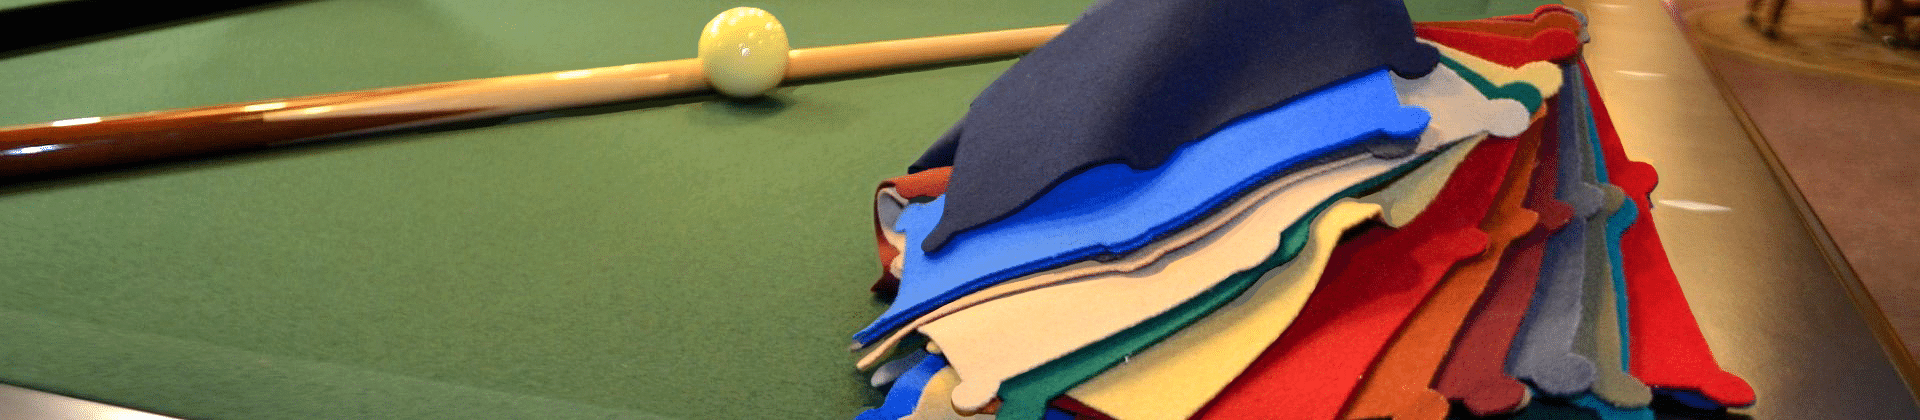 Best Felt for Pool Table Reviewed in Detail